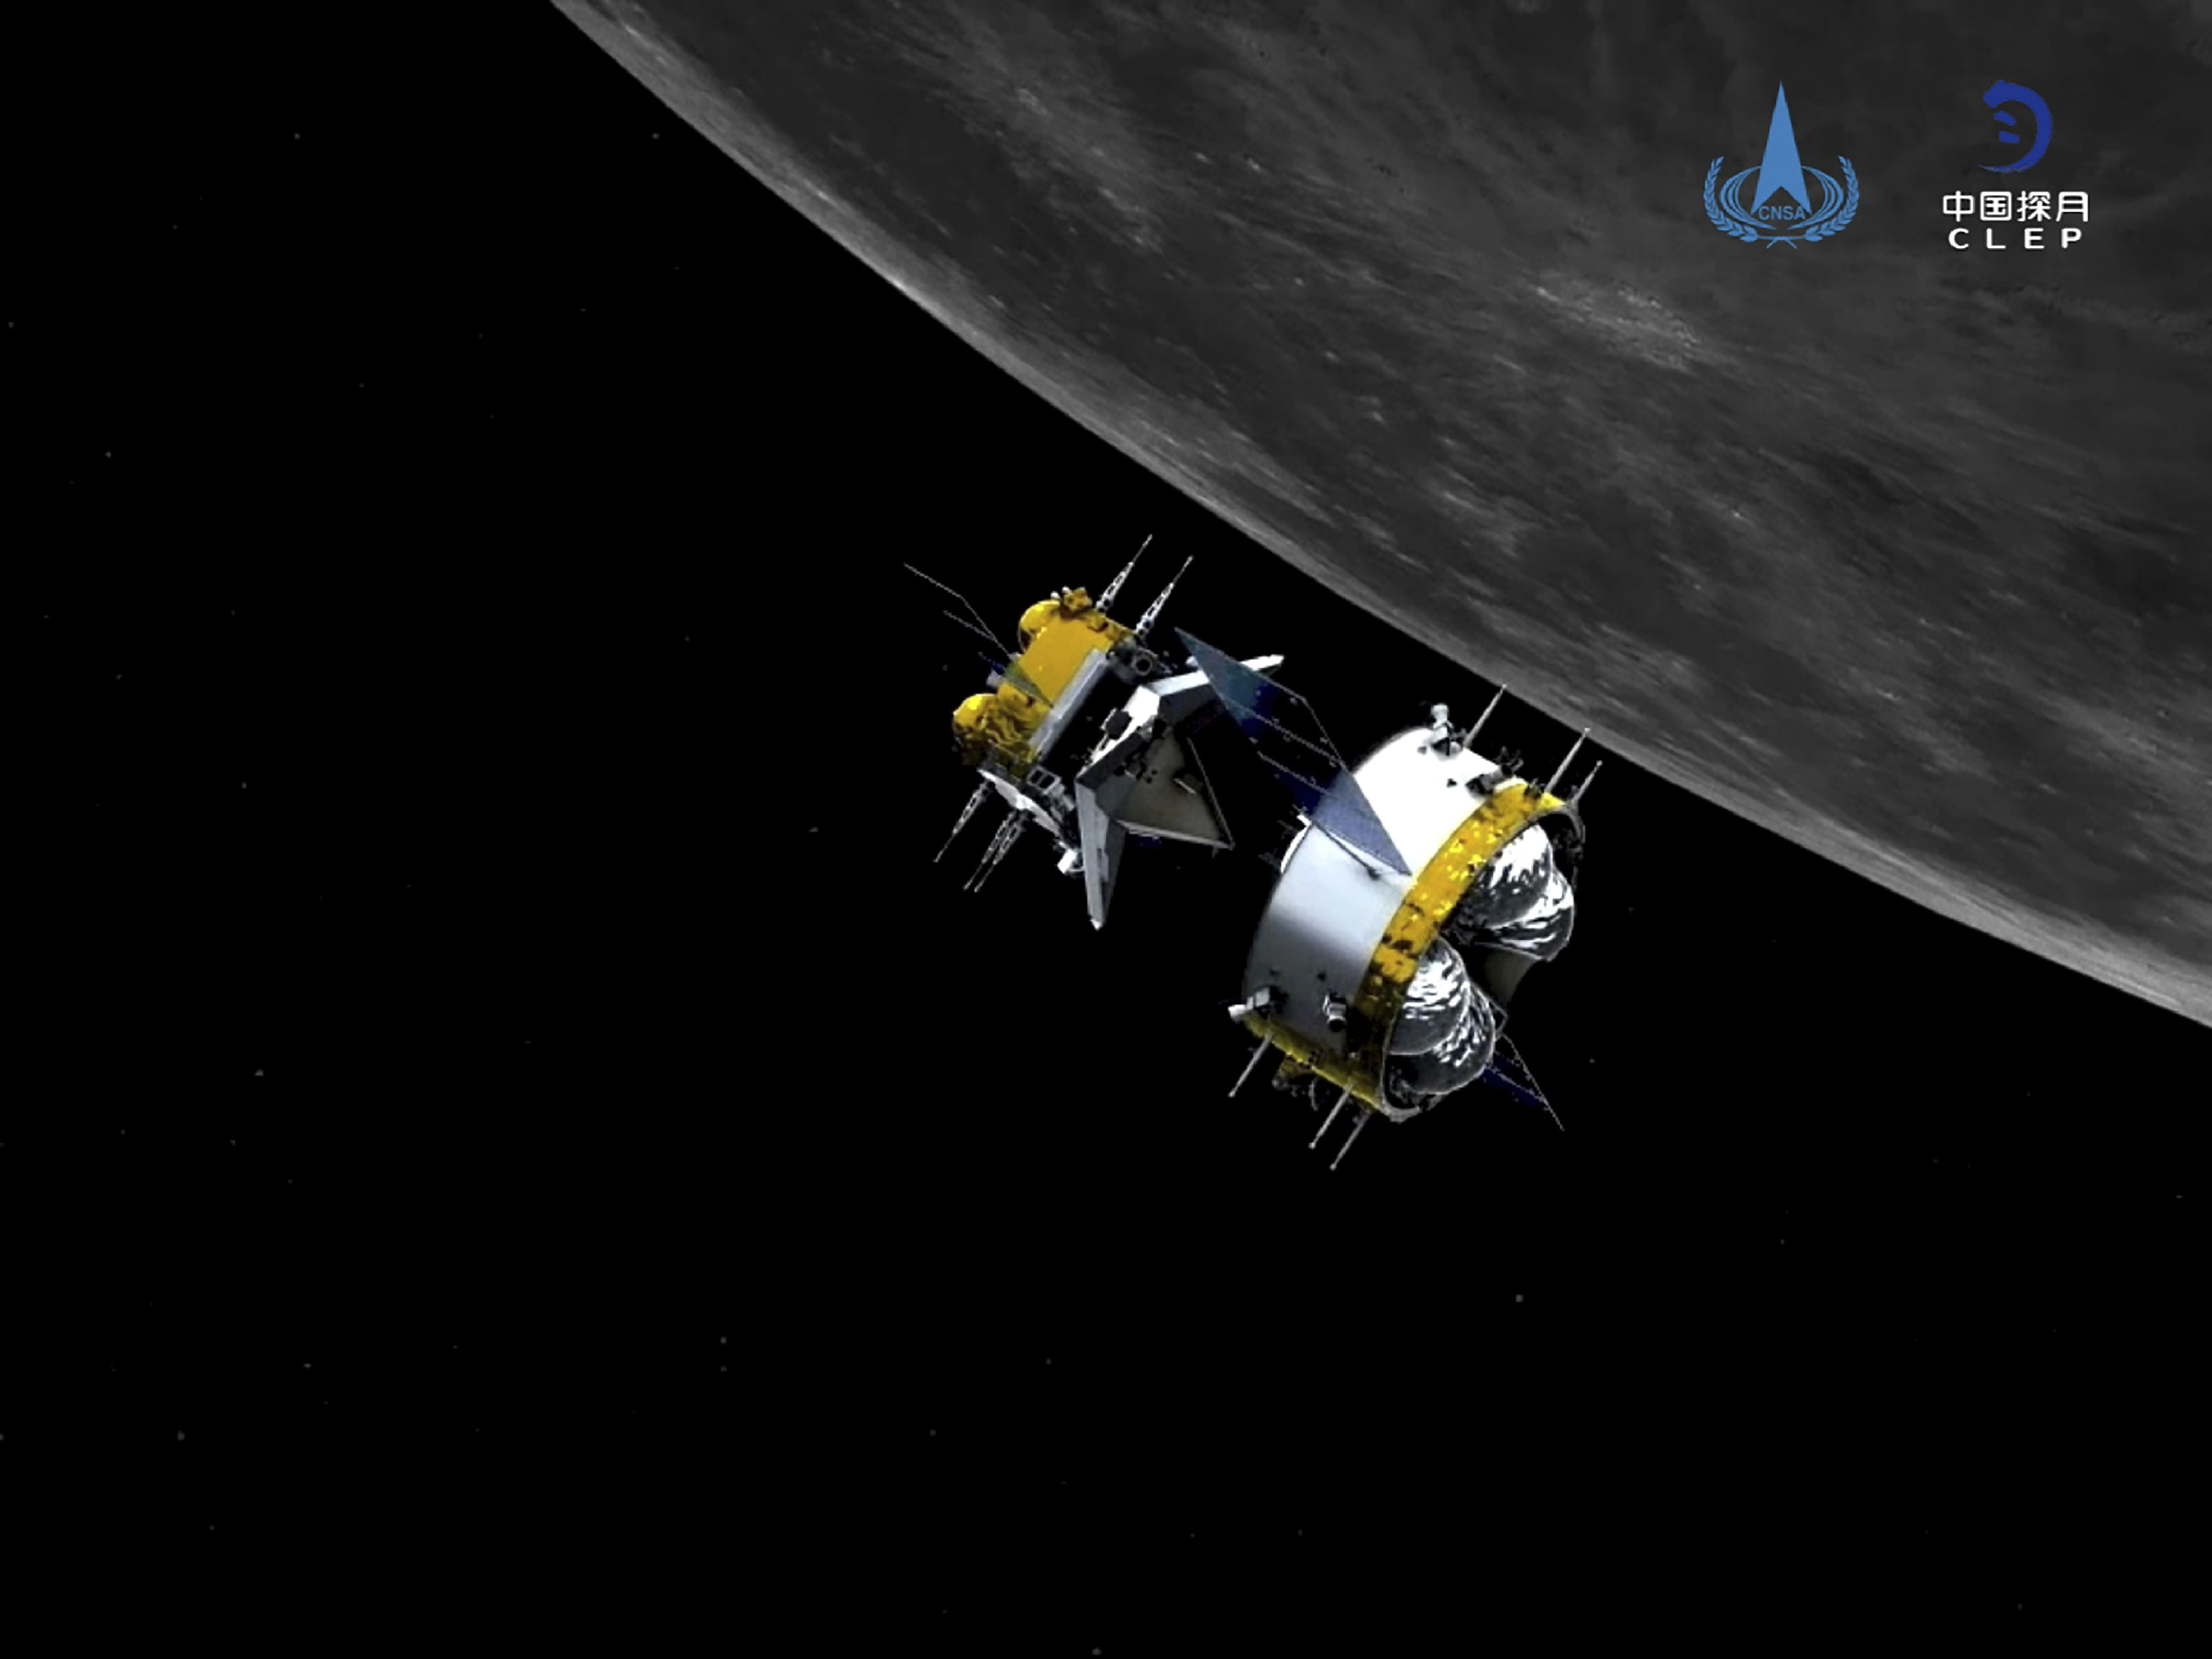 The Chinese spacecraft returns to Earth carrying the moon rocks